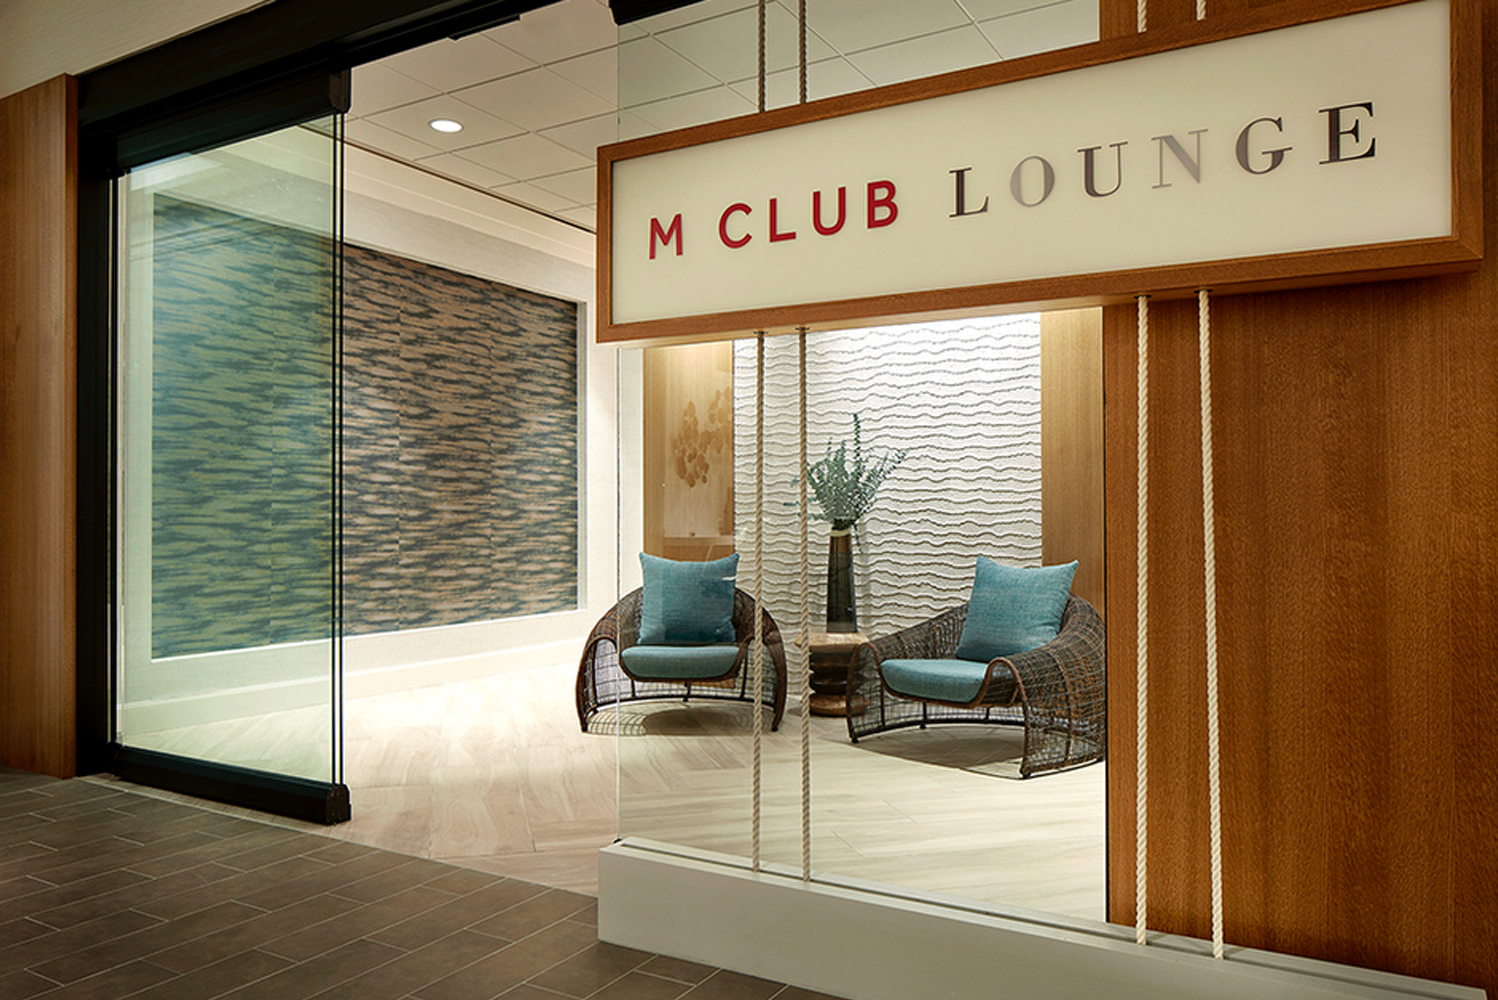 ZWA also designed the new M Club Lounge concept, an extension of the Great Room.